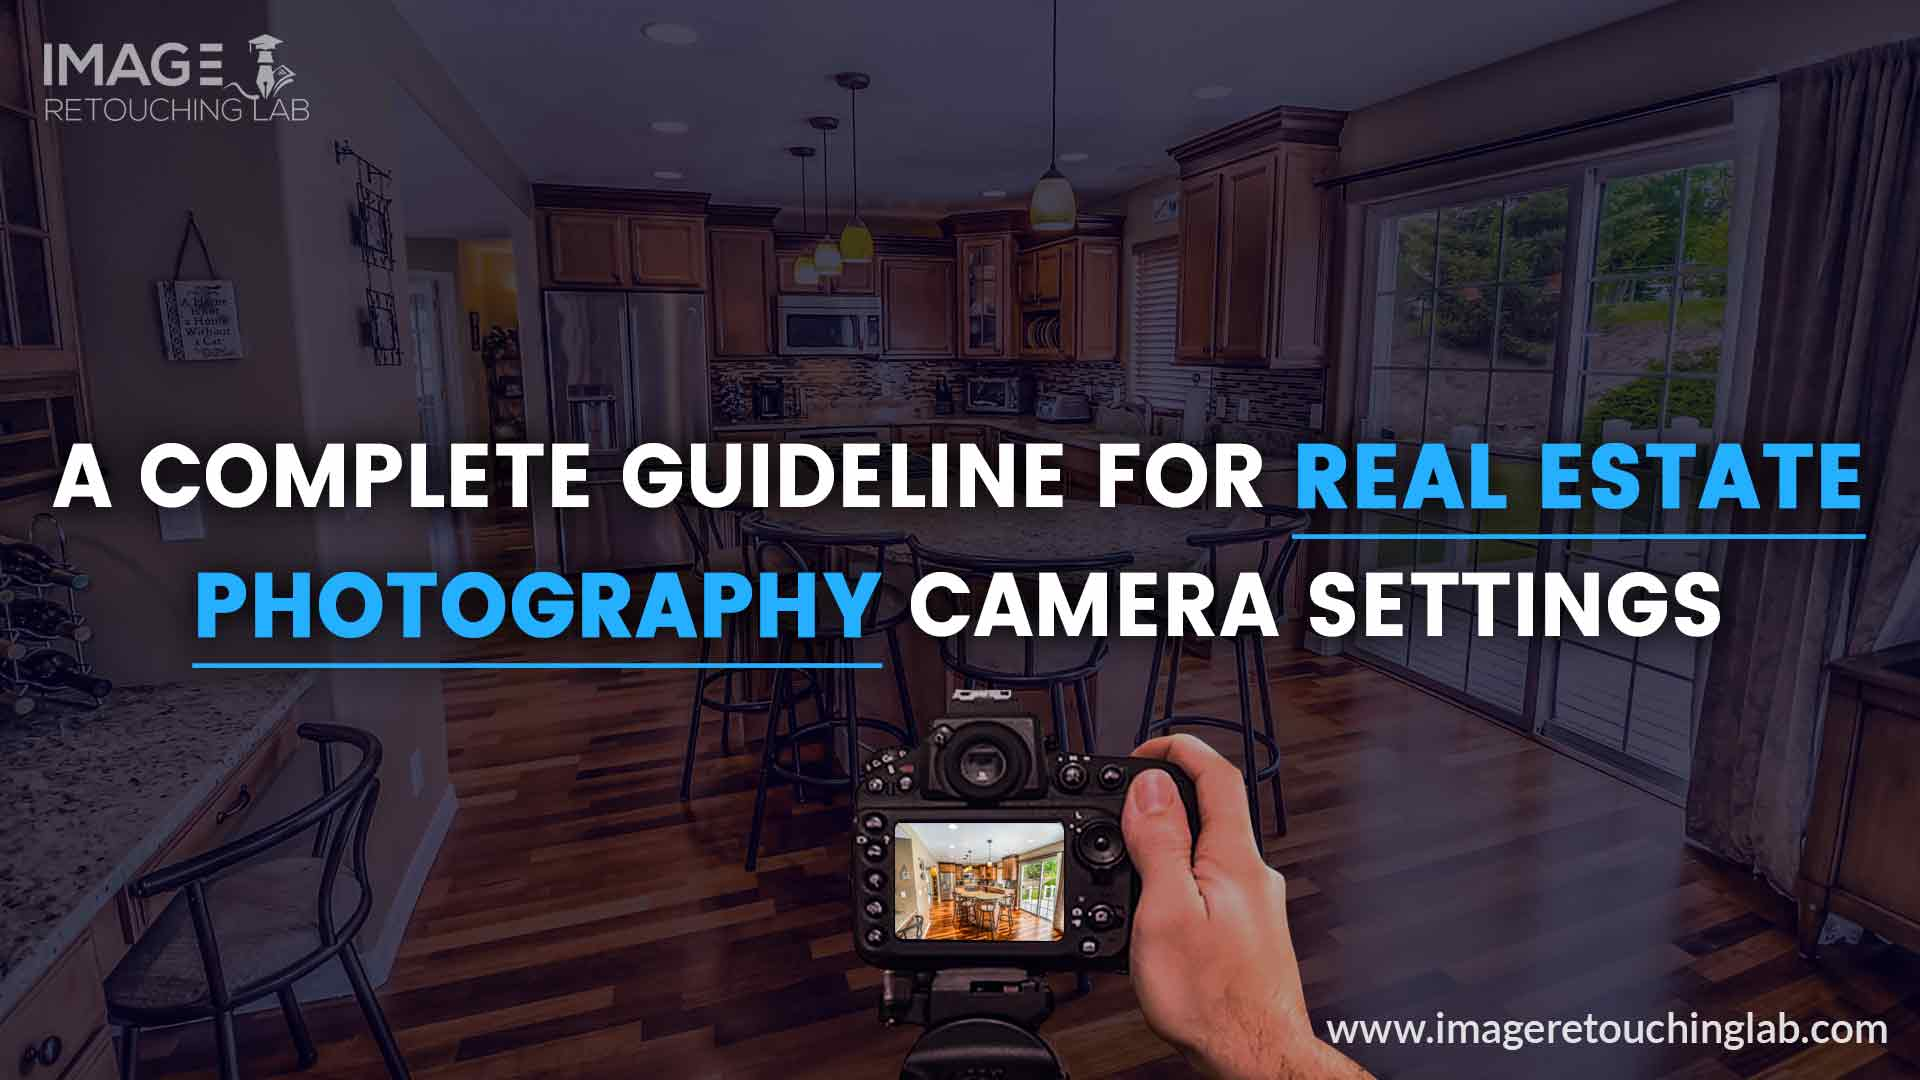 A Complete Guideline For Real Estate Photography Camera Settings